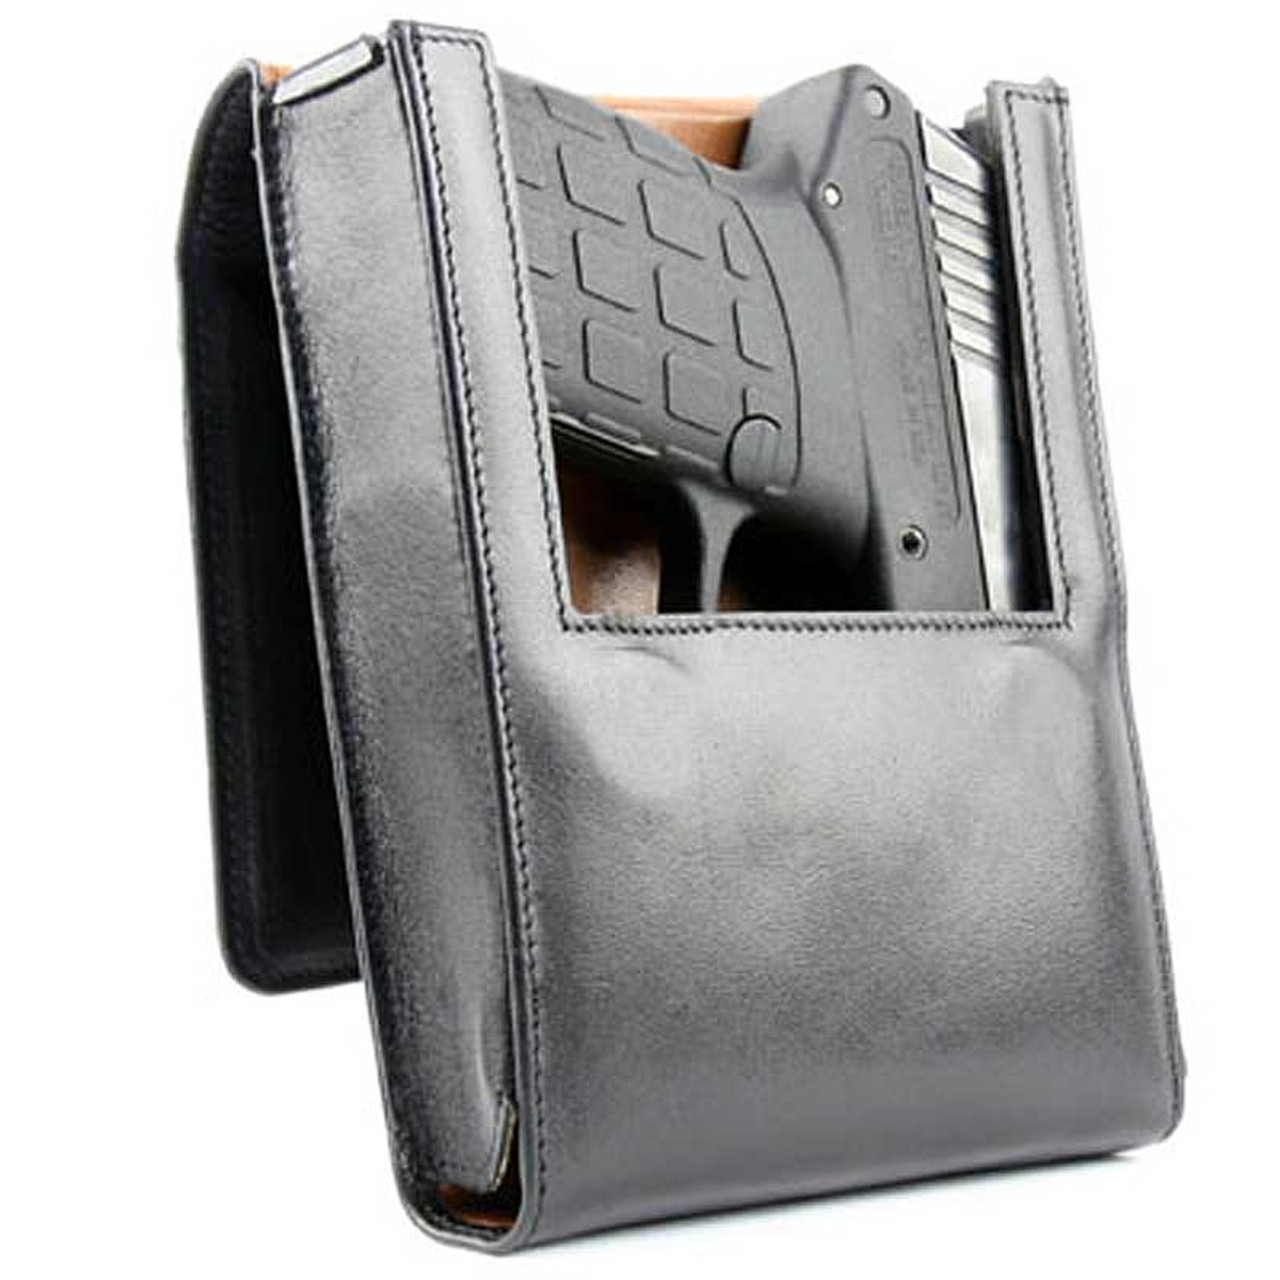 Keltec P11 Concealed Carry Holster (Belt Loop)